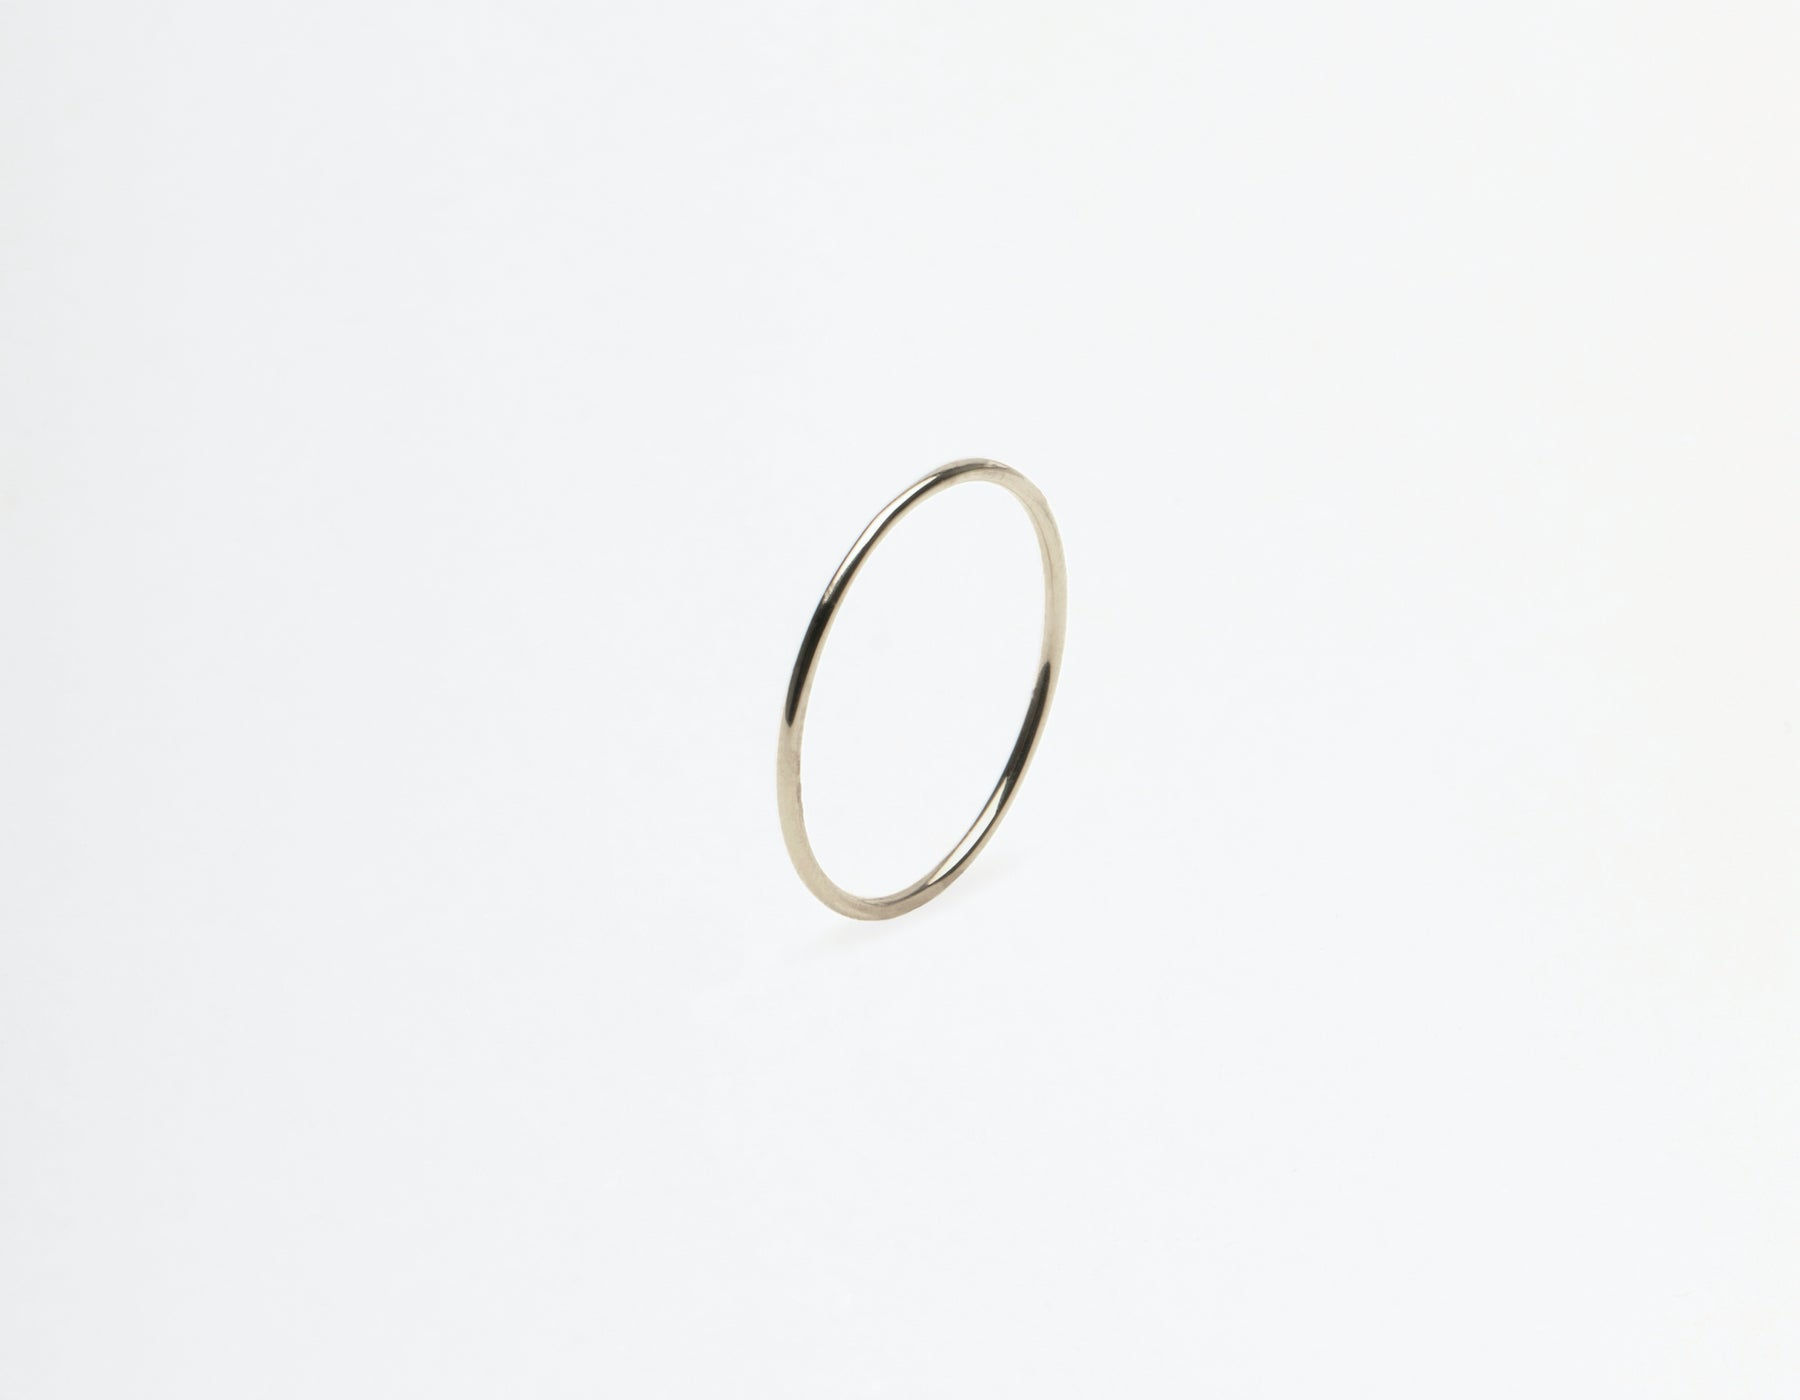 Vrai and Oro 14k solid gold Skinny Stacking Ring single minimalist band, 14K White Gold